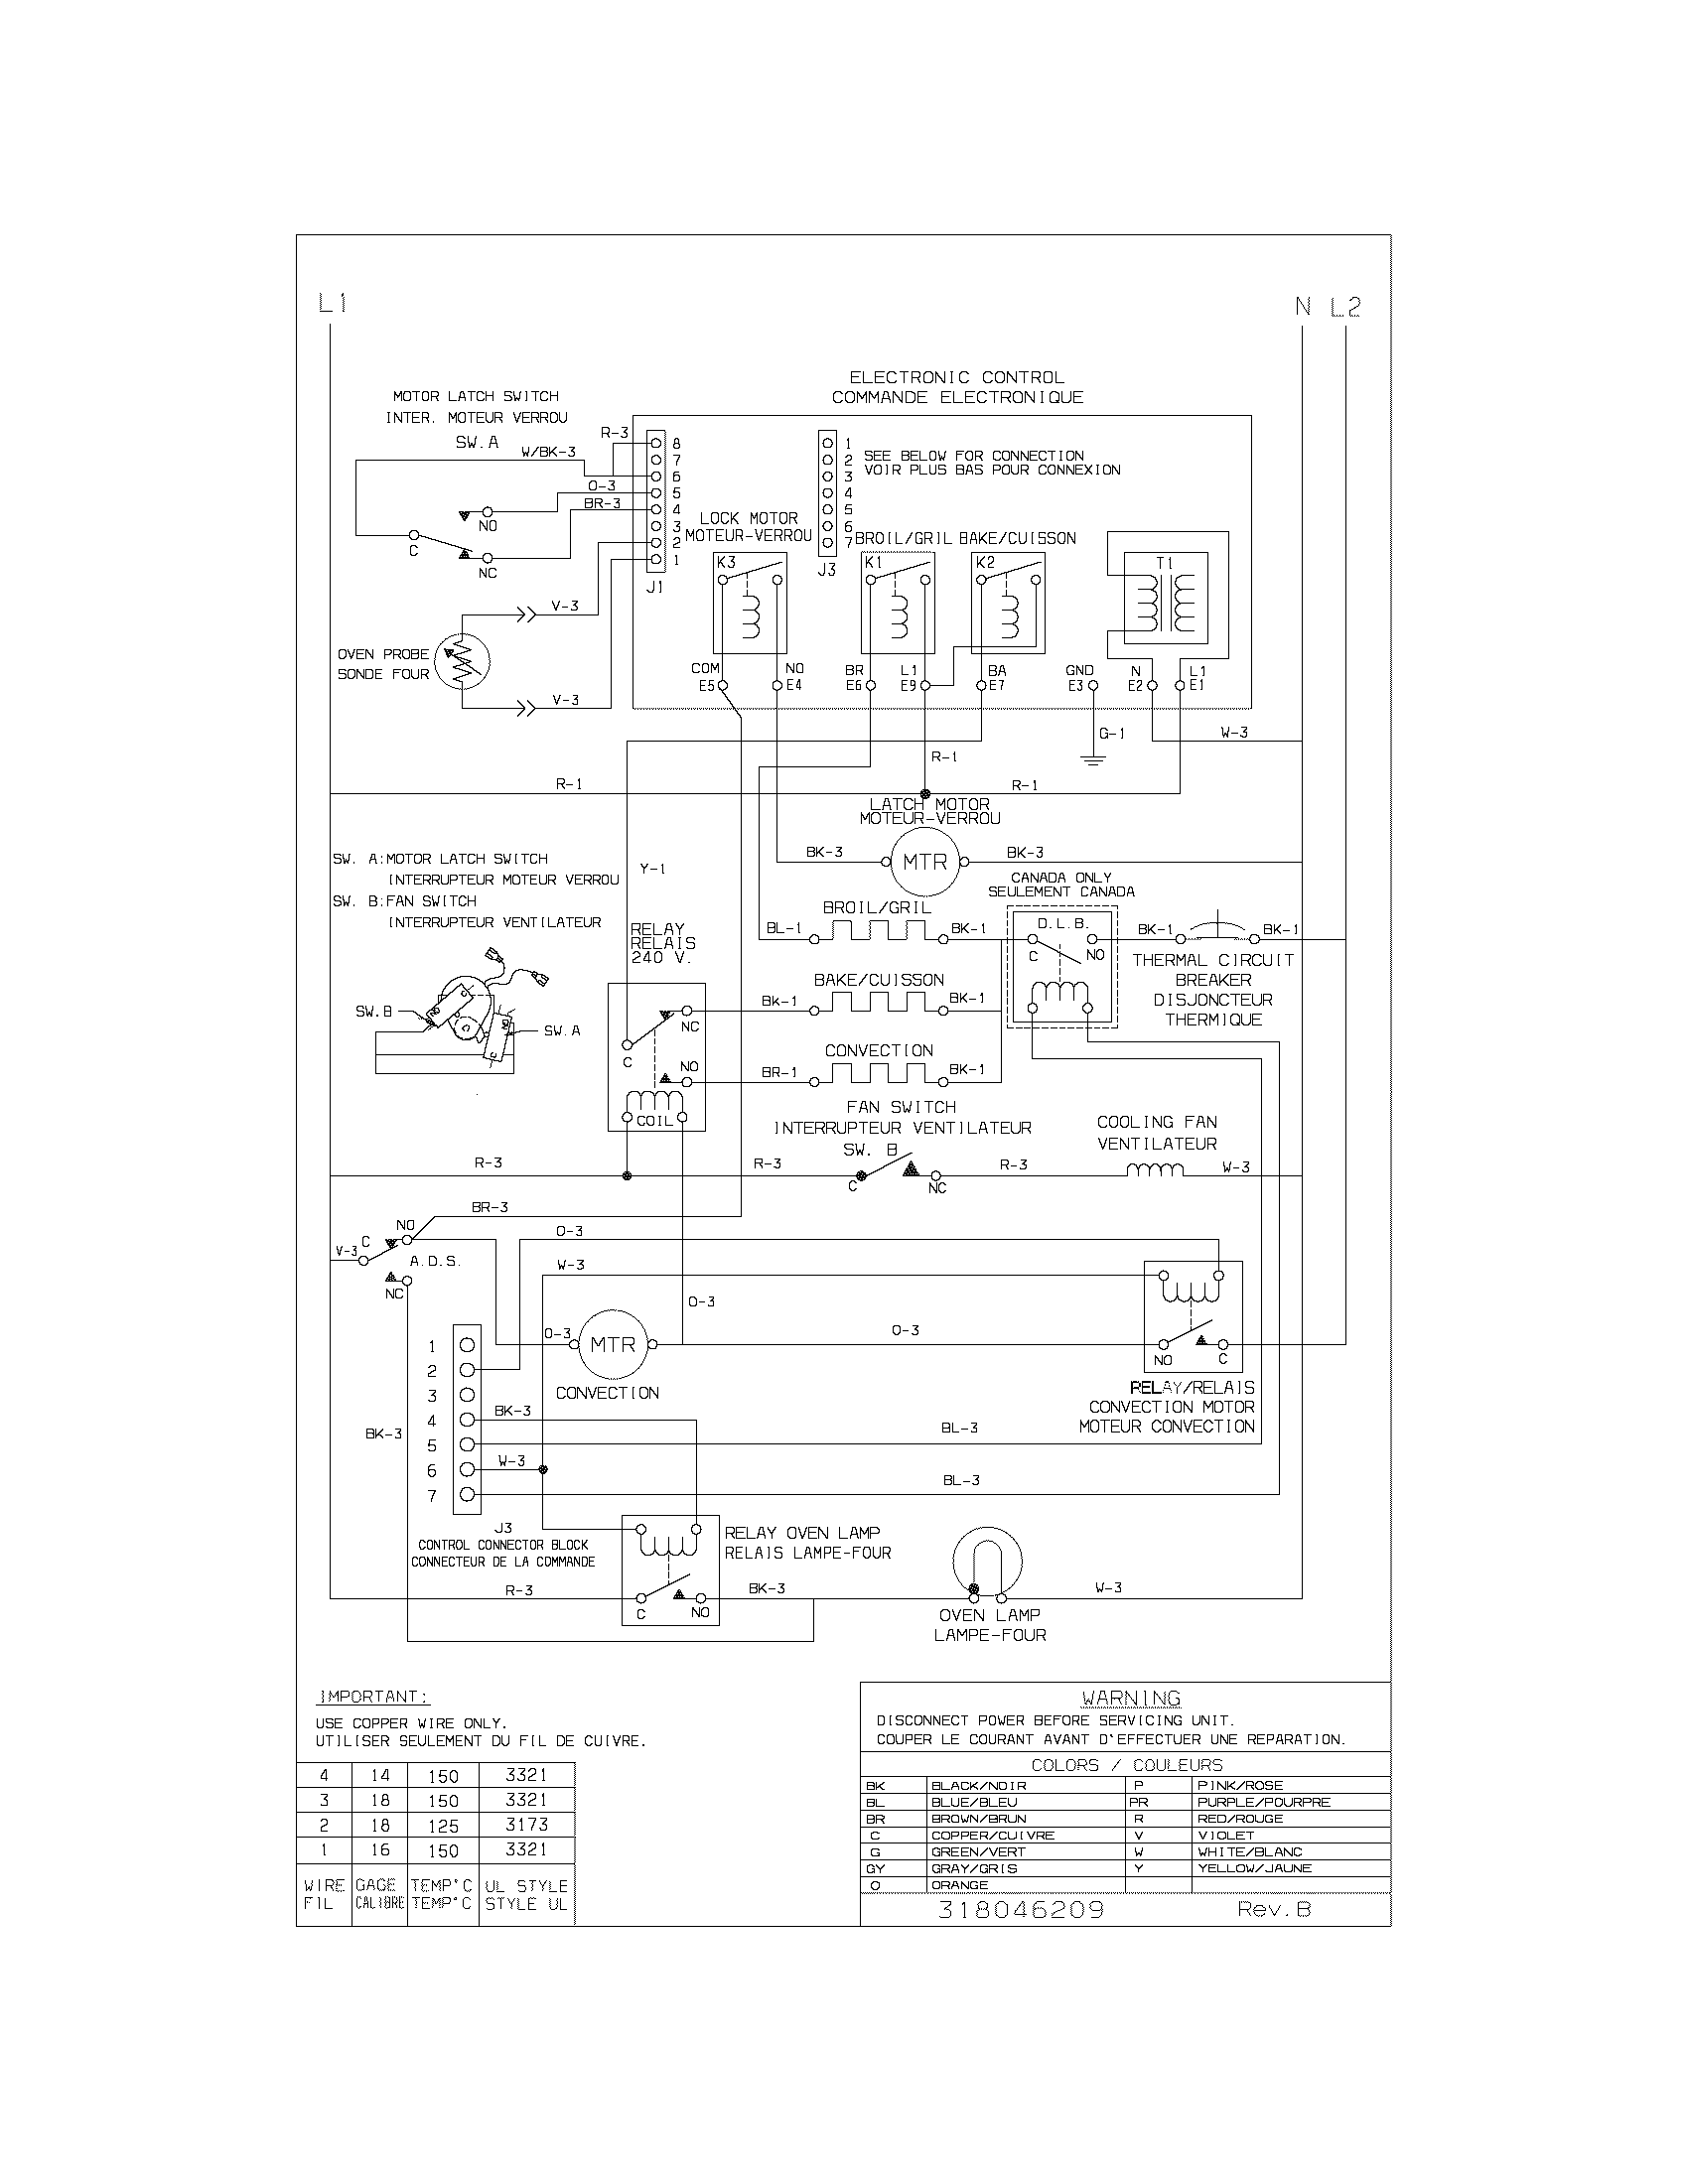 Ds 450 wiring diagram 2008 can am ds 450 service manual pdf